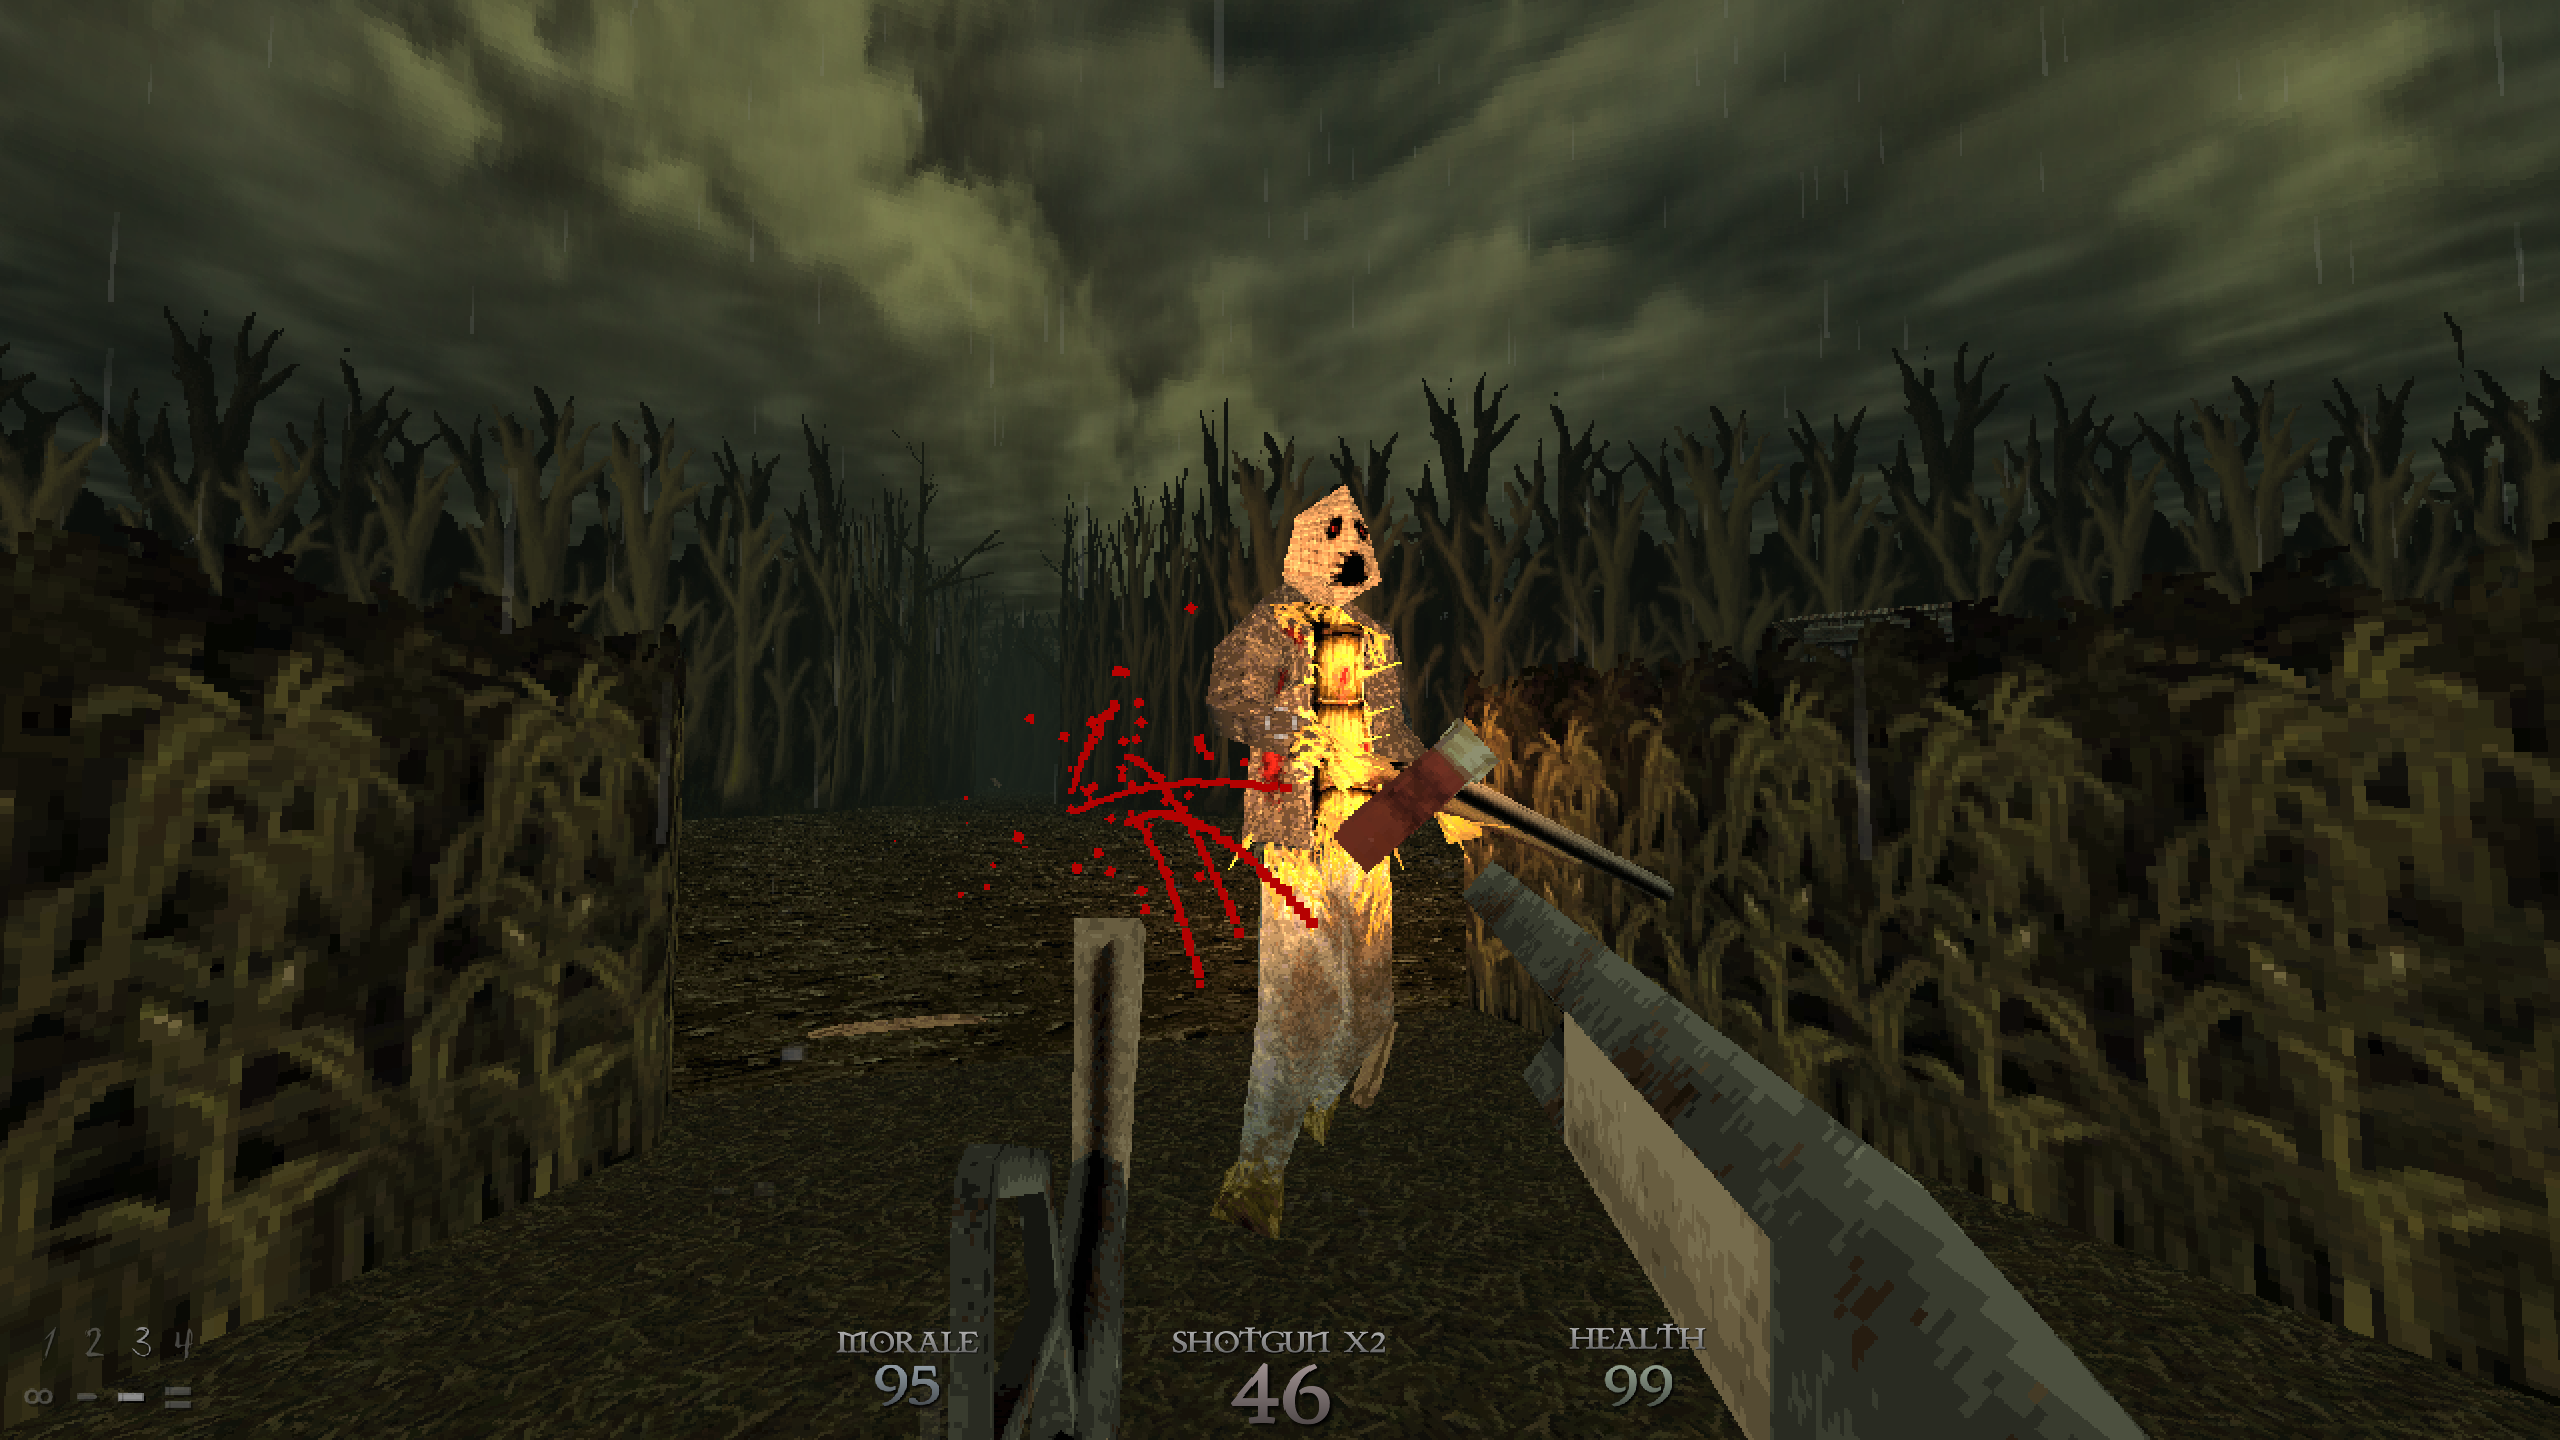 950313-dusk-windows-screenshot-fighting-an-enemy-in-the-fields-early